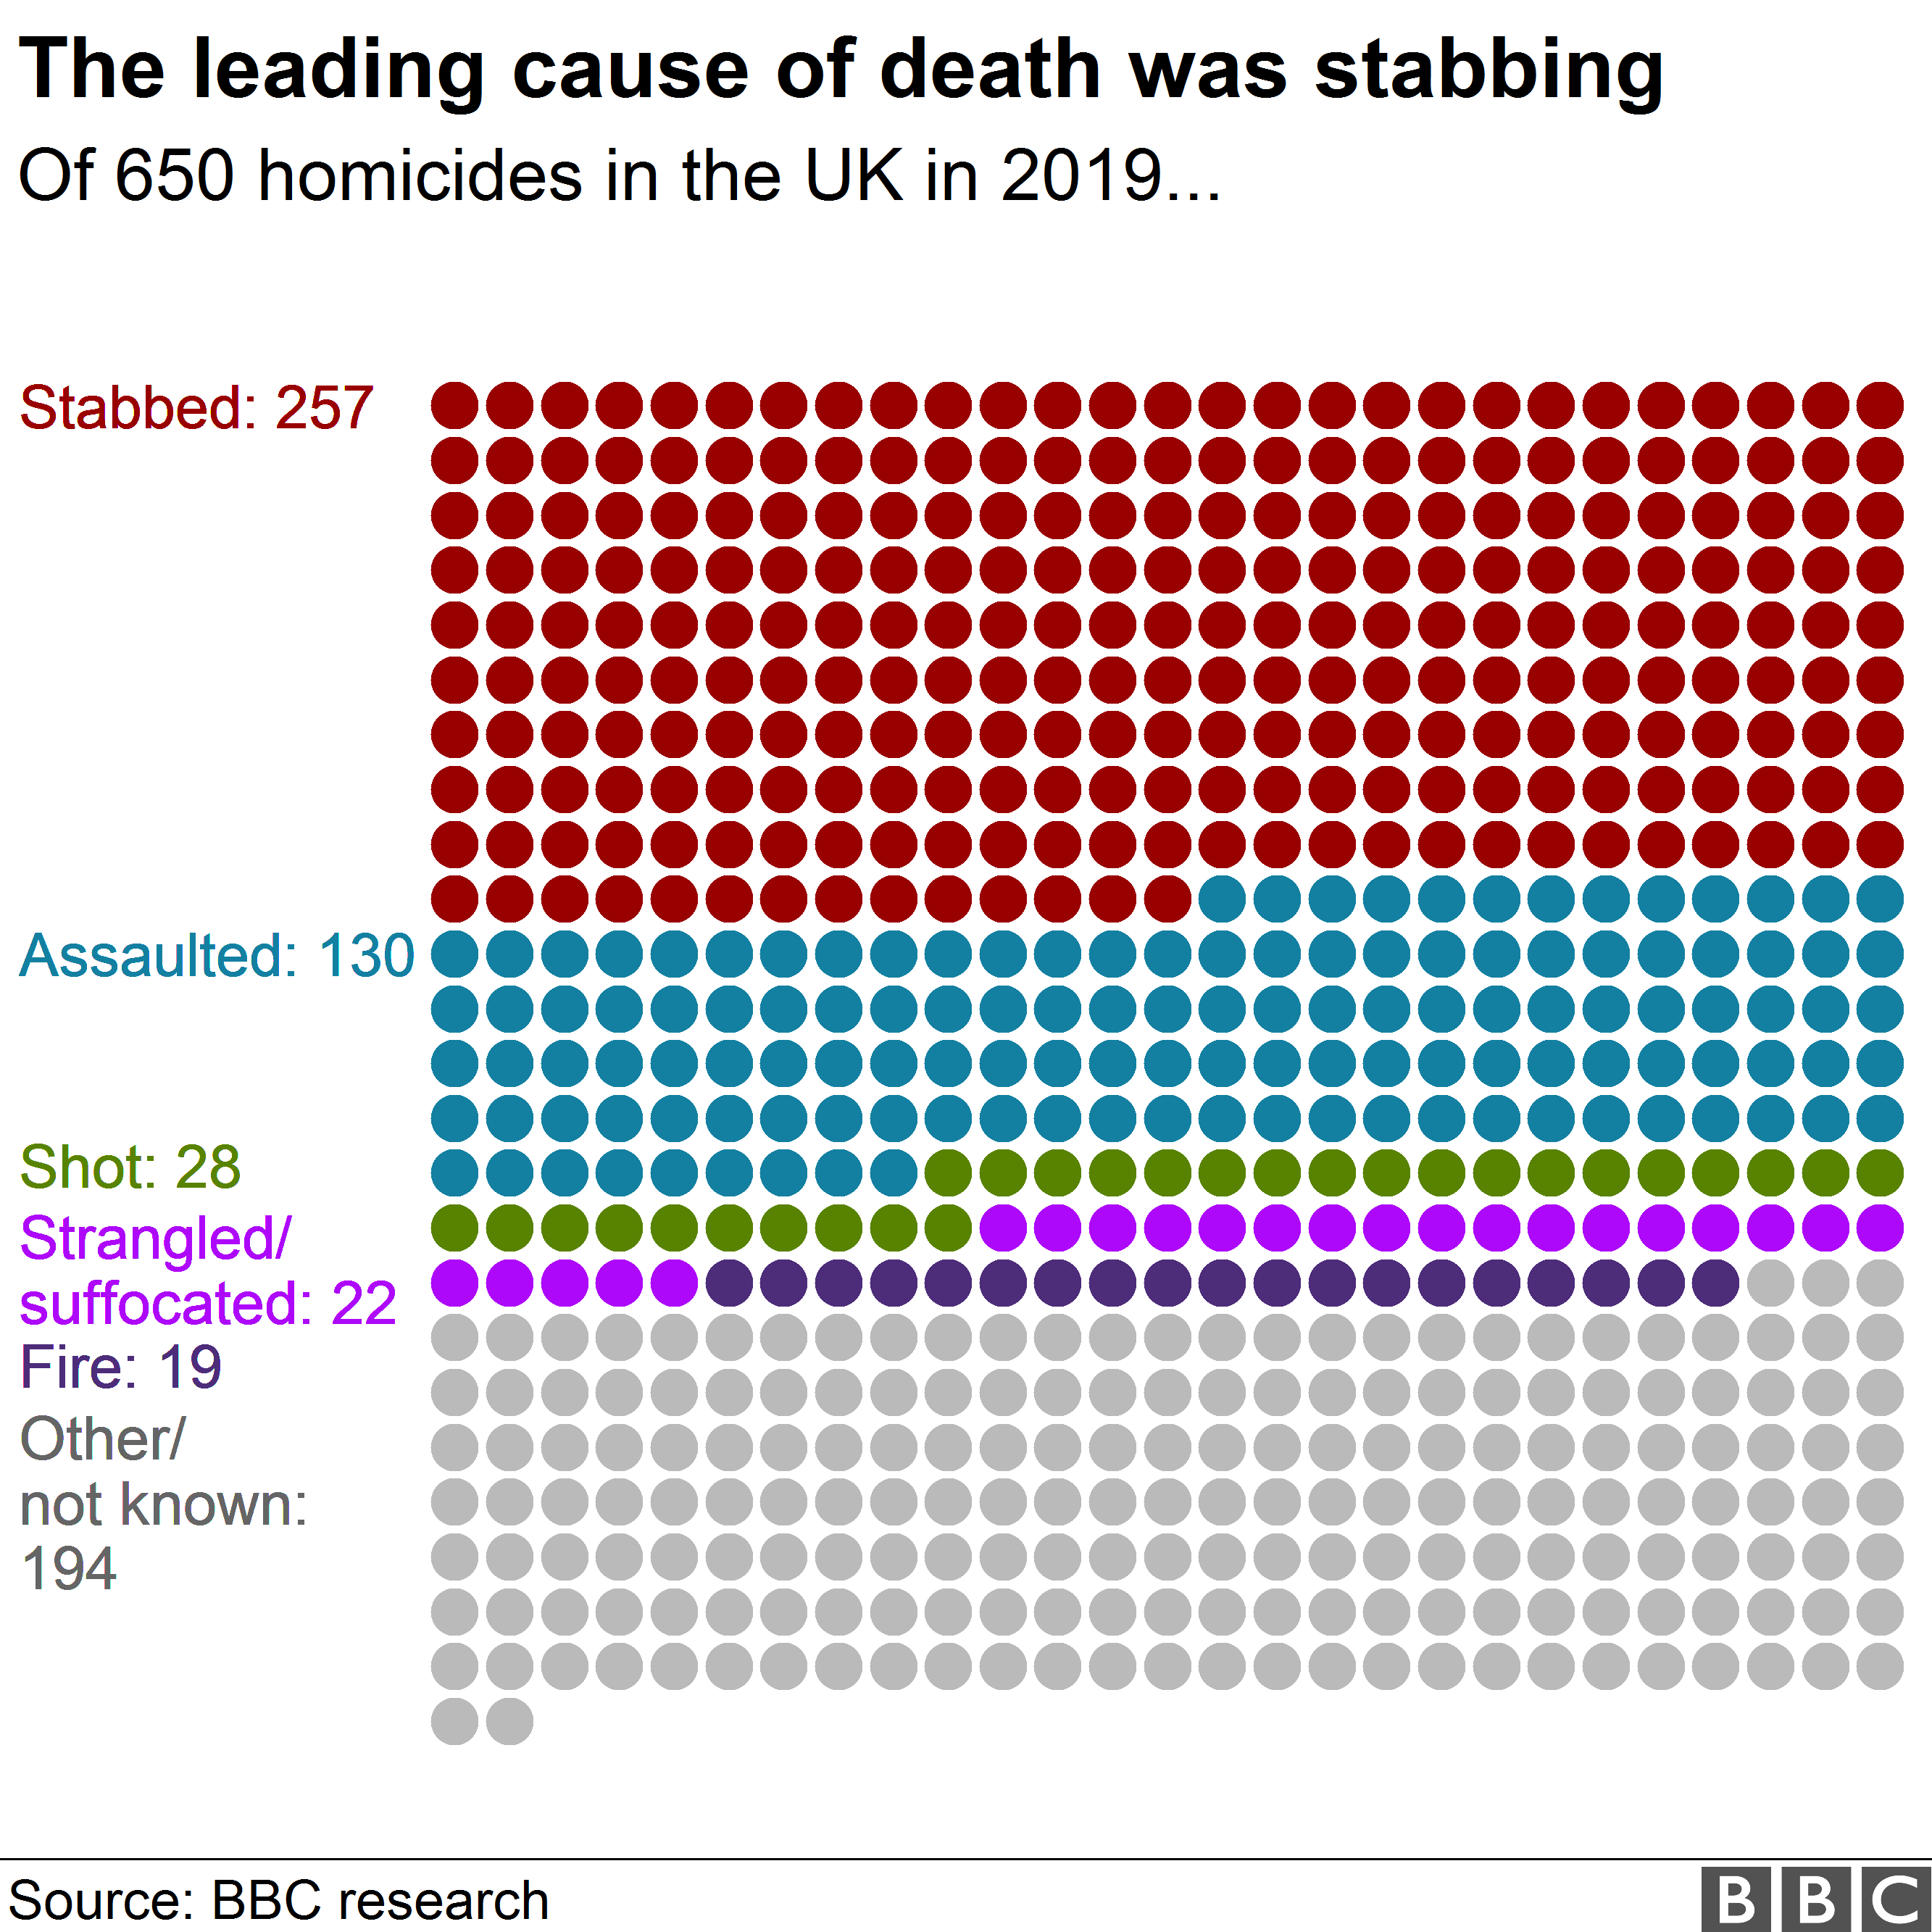 Chart showing homicide victims represented by dots, colour coded by method of killing